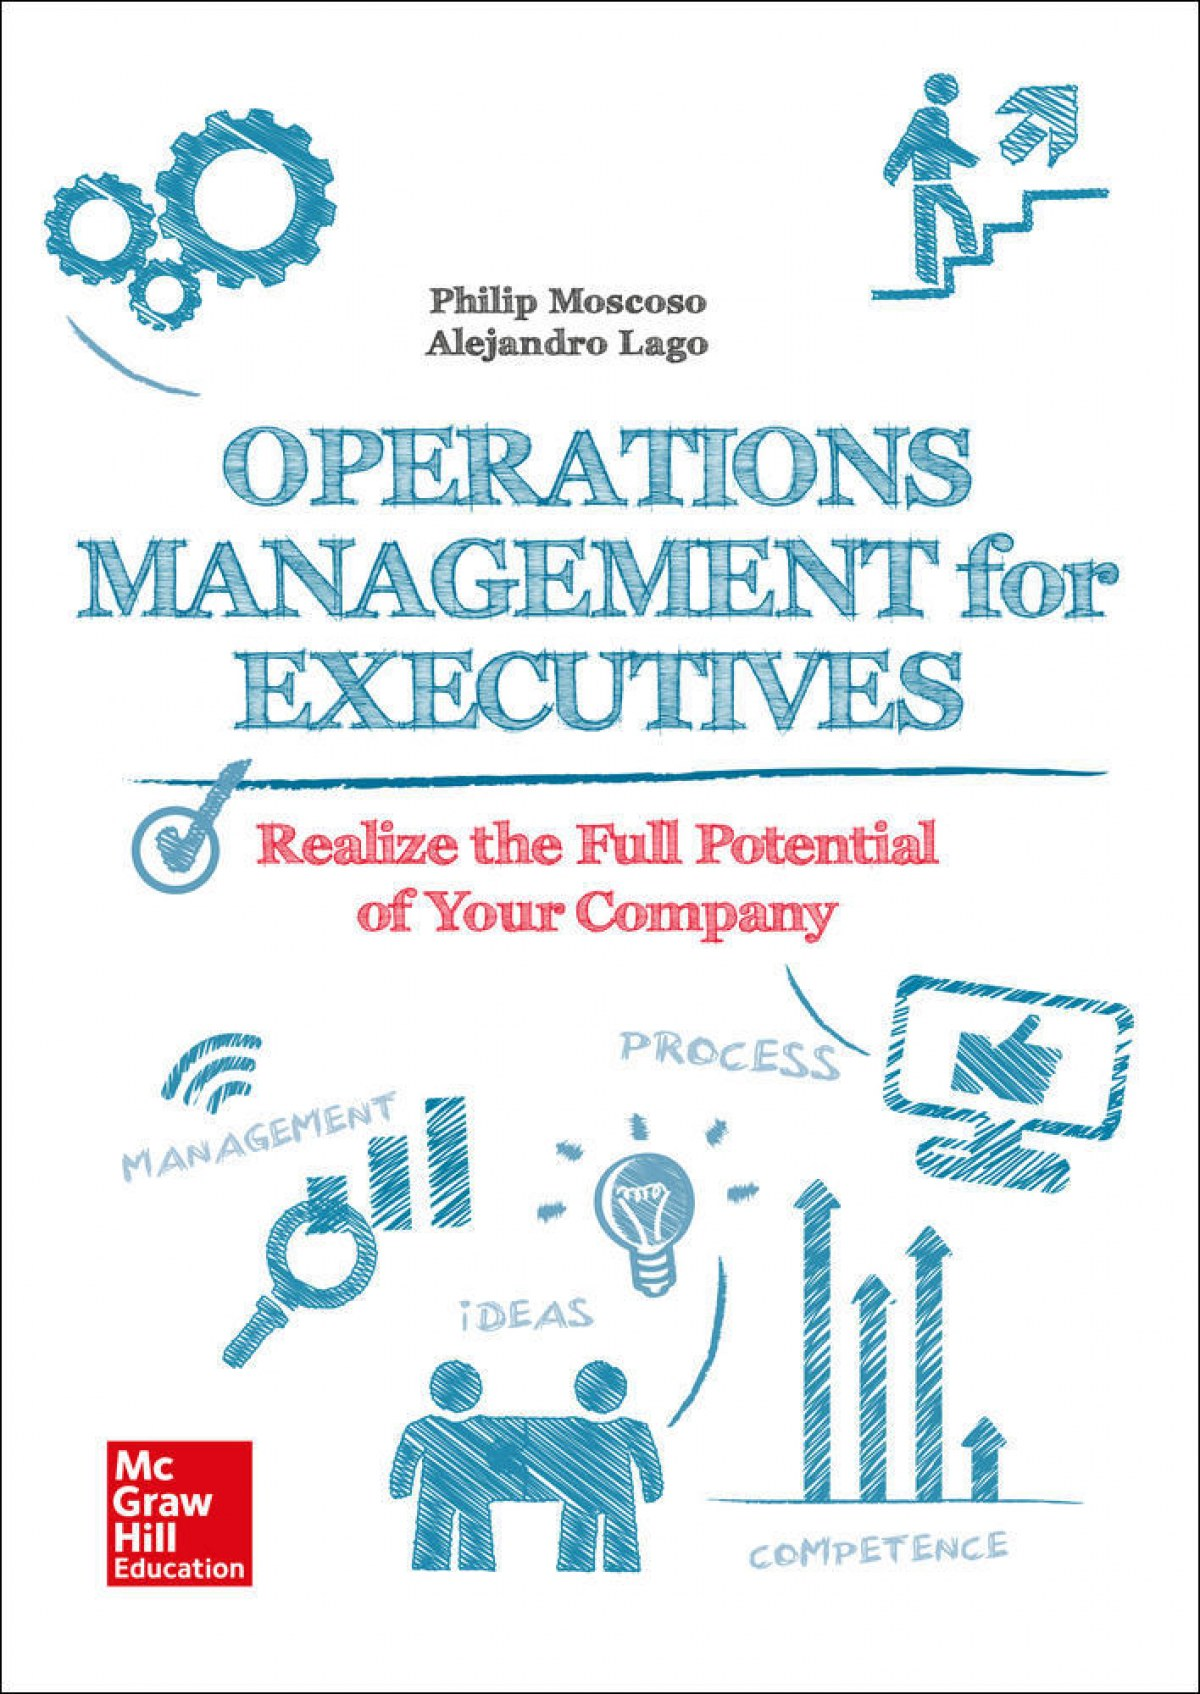 OPERATIONS MANAGEMENT FOR EXECUTIVES